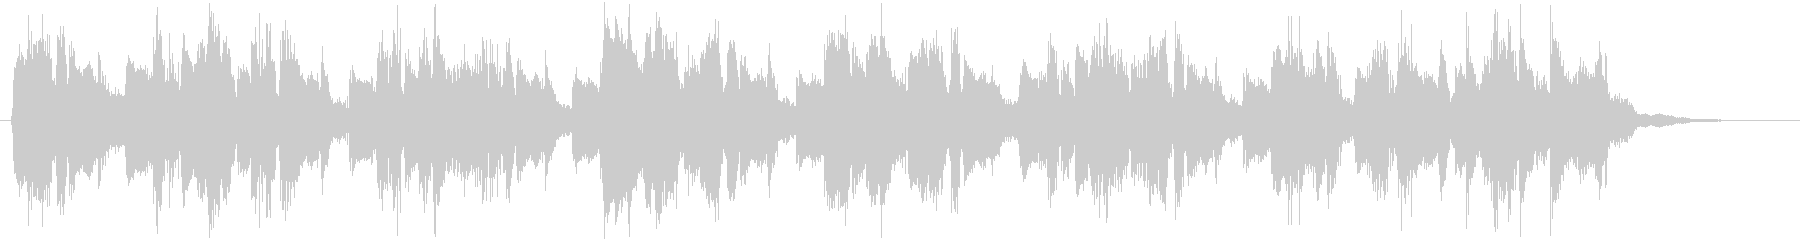 Radio jingle with a cyberpunk atmosphere's unreproduced waveform